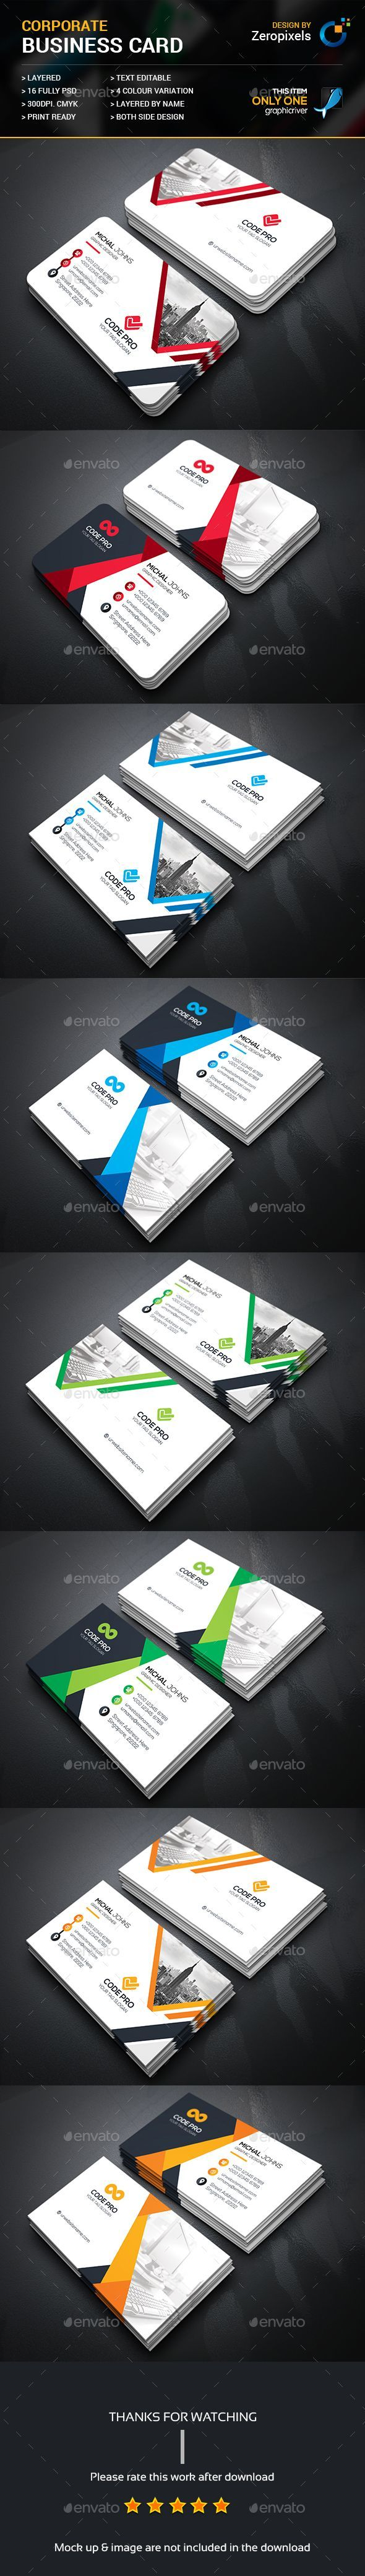 Best business card maker image collections free business cards cna business cards images free business cards best business card maker images free business cards cna magicingreecefo Gallery